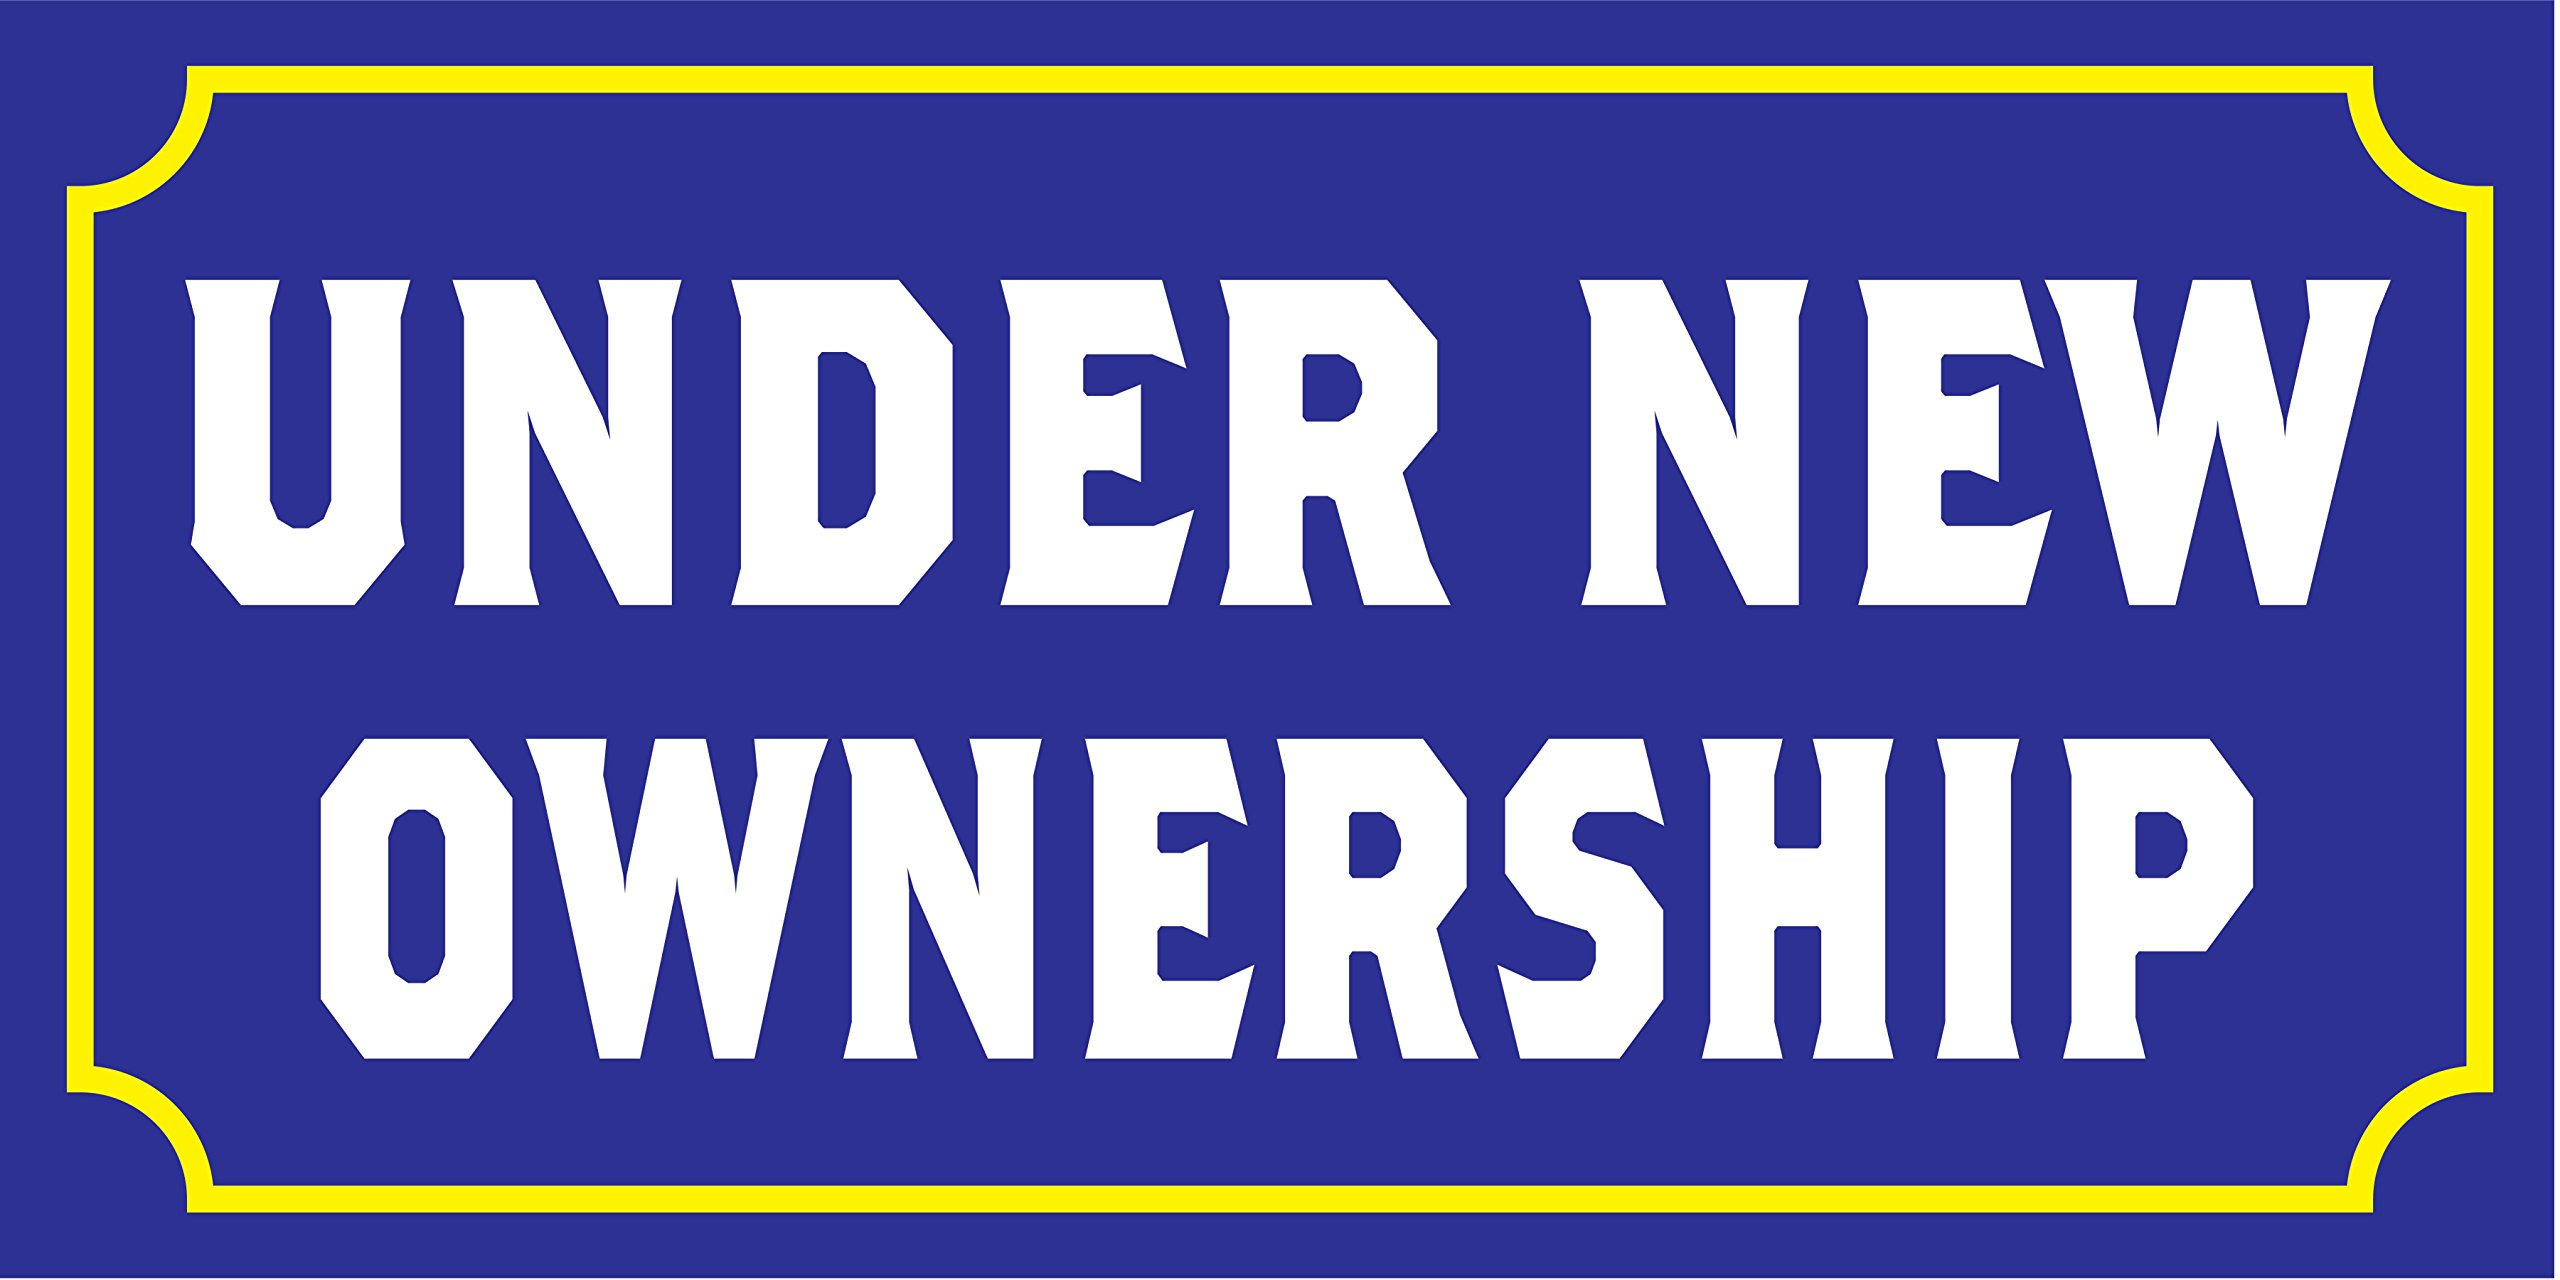 Pre-Printed - Under New Ownership Banner - Solid - Blue (10' x 5') by Reliable Banner Sign Supply & Printing